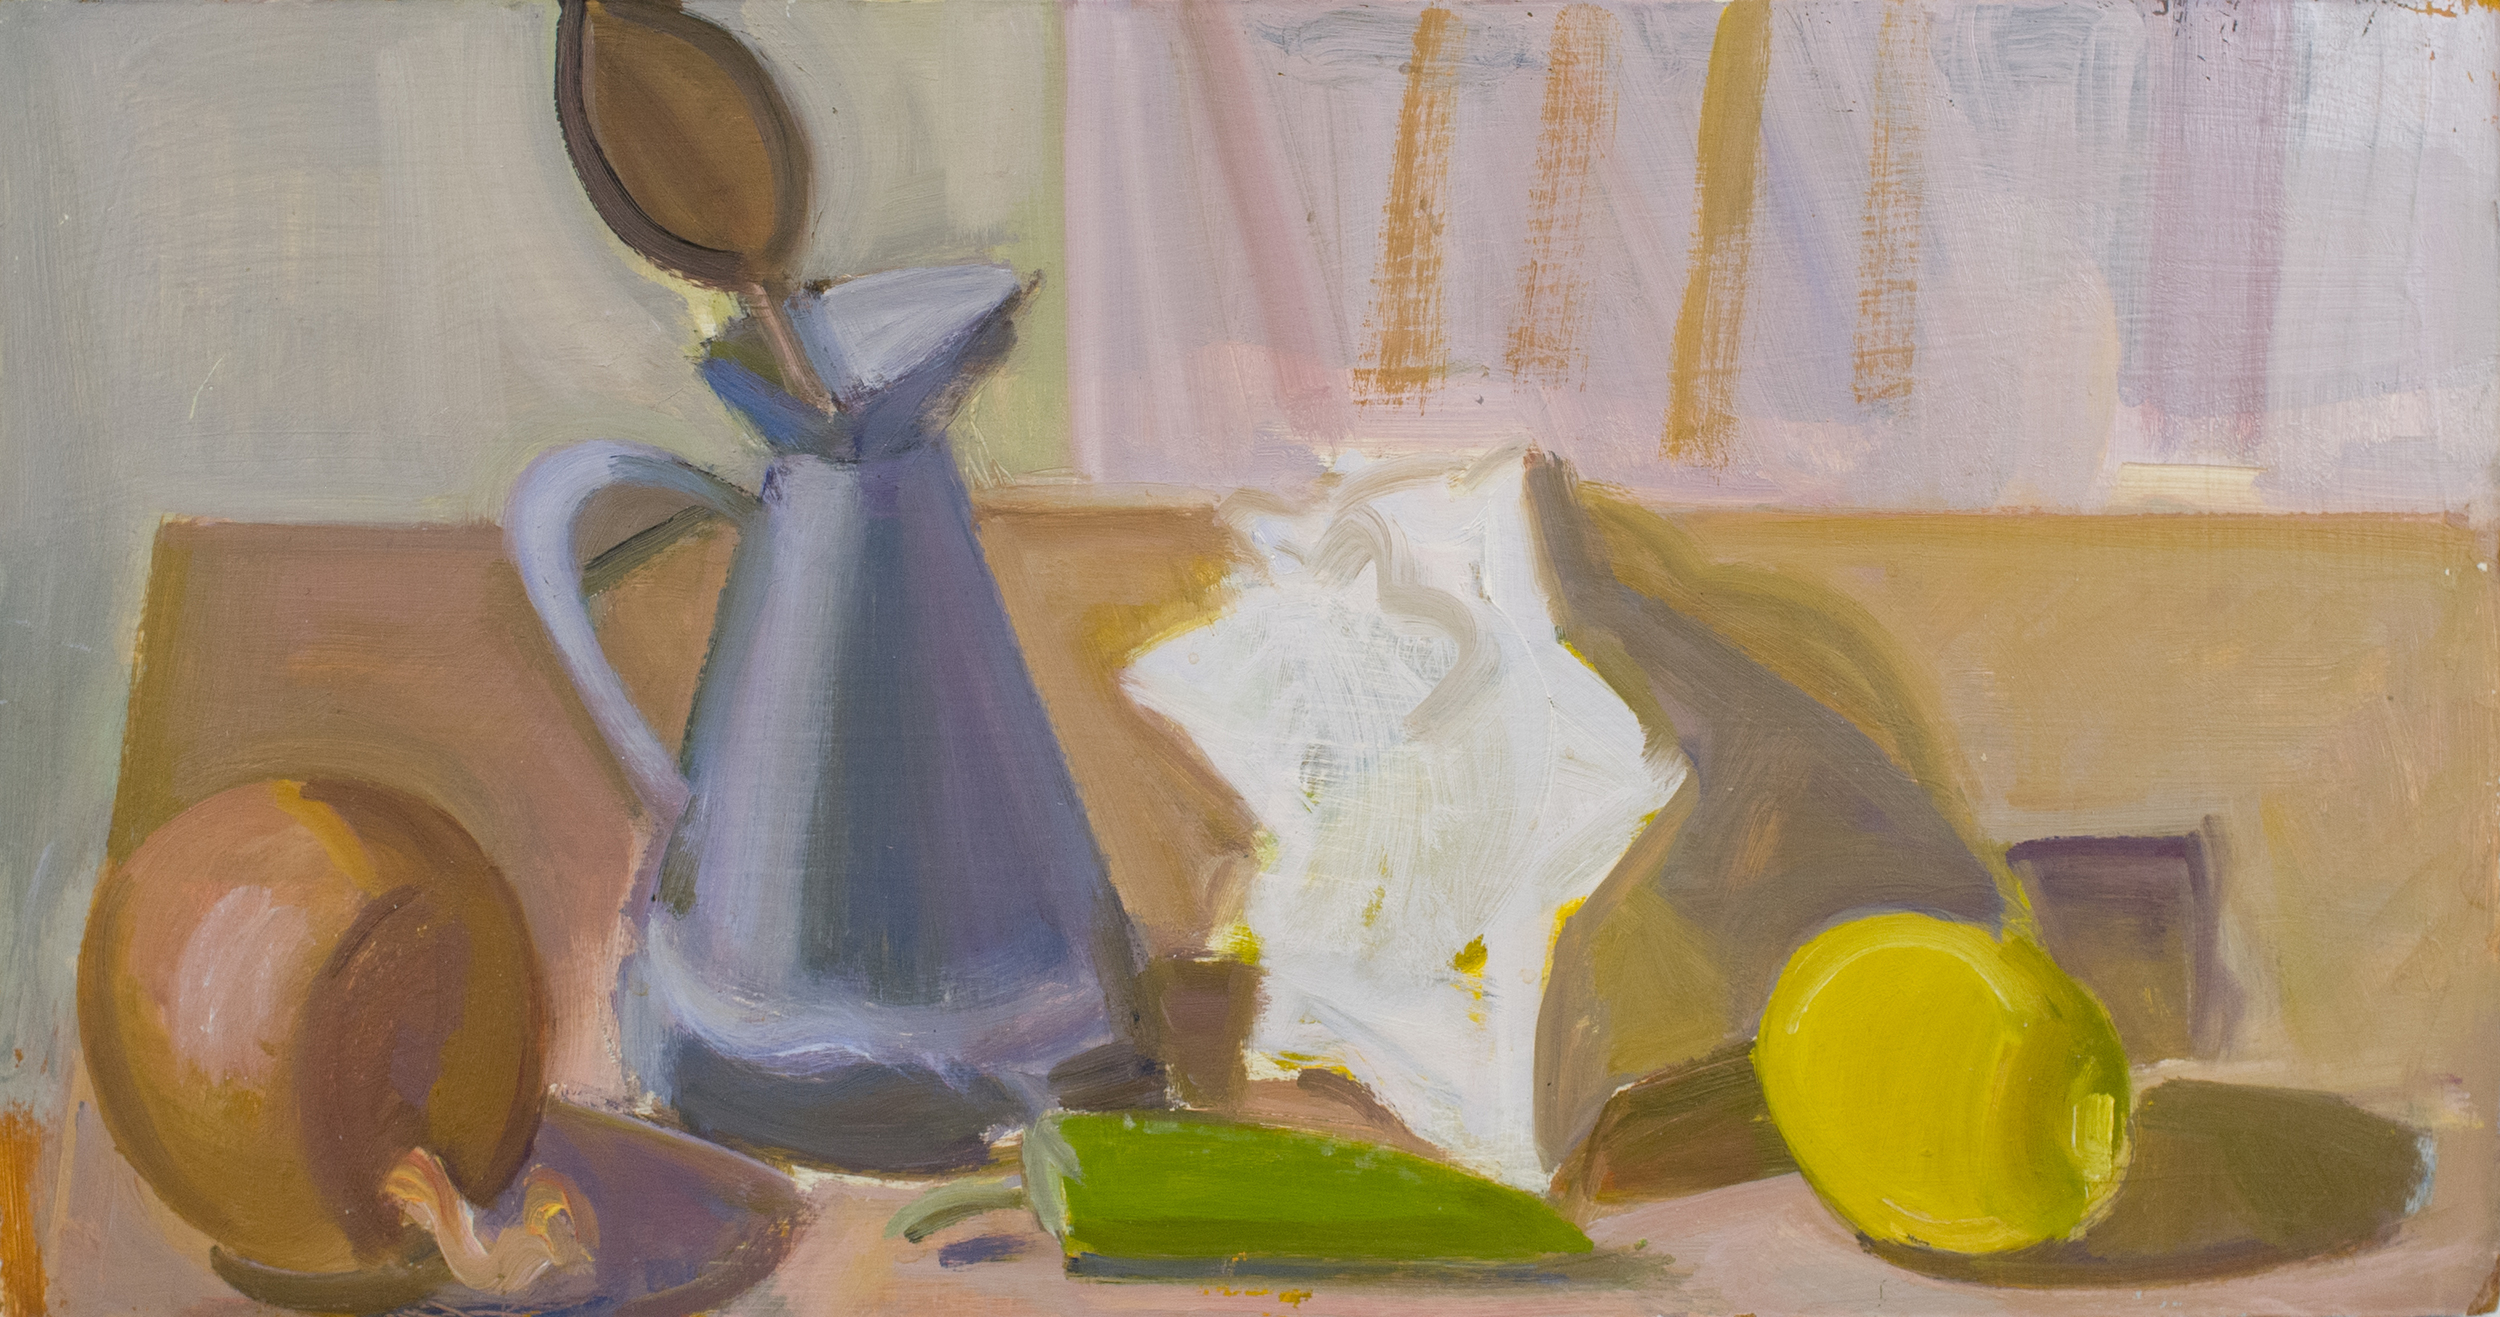 """Onion, Measuring Pitcher and Trowel, with Shell and Lemon, oil on panel, 8.5""""x16"""""""